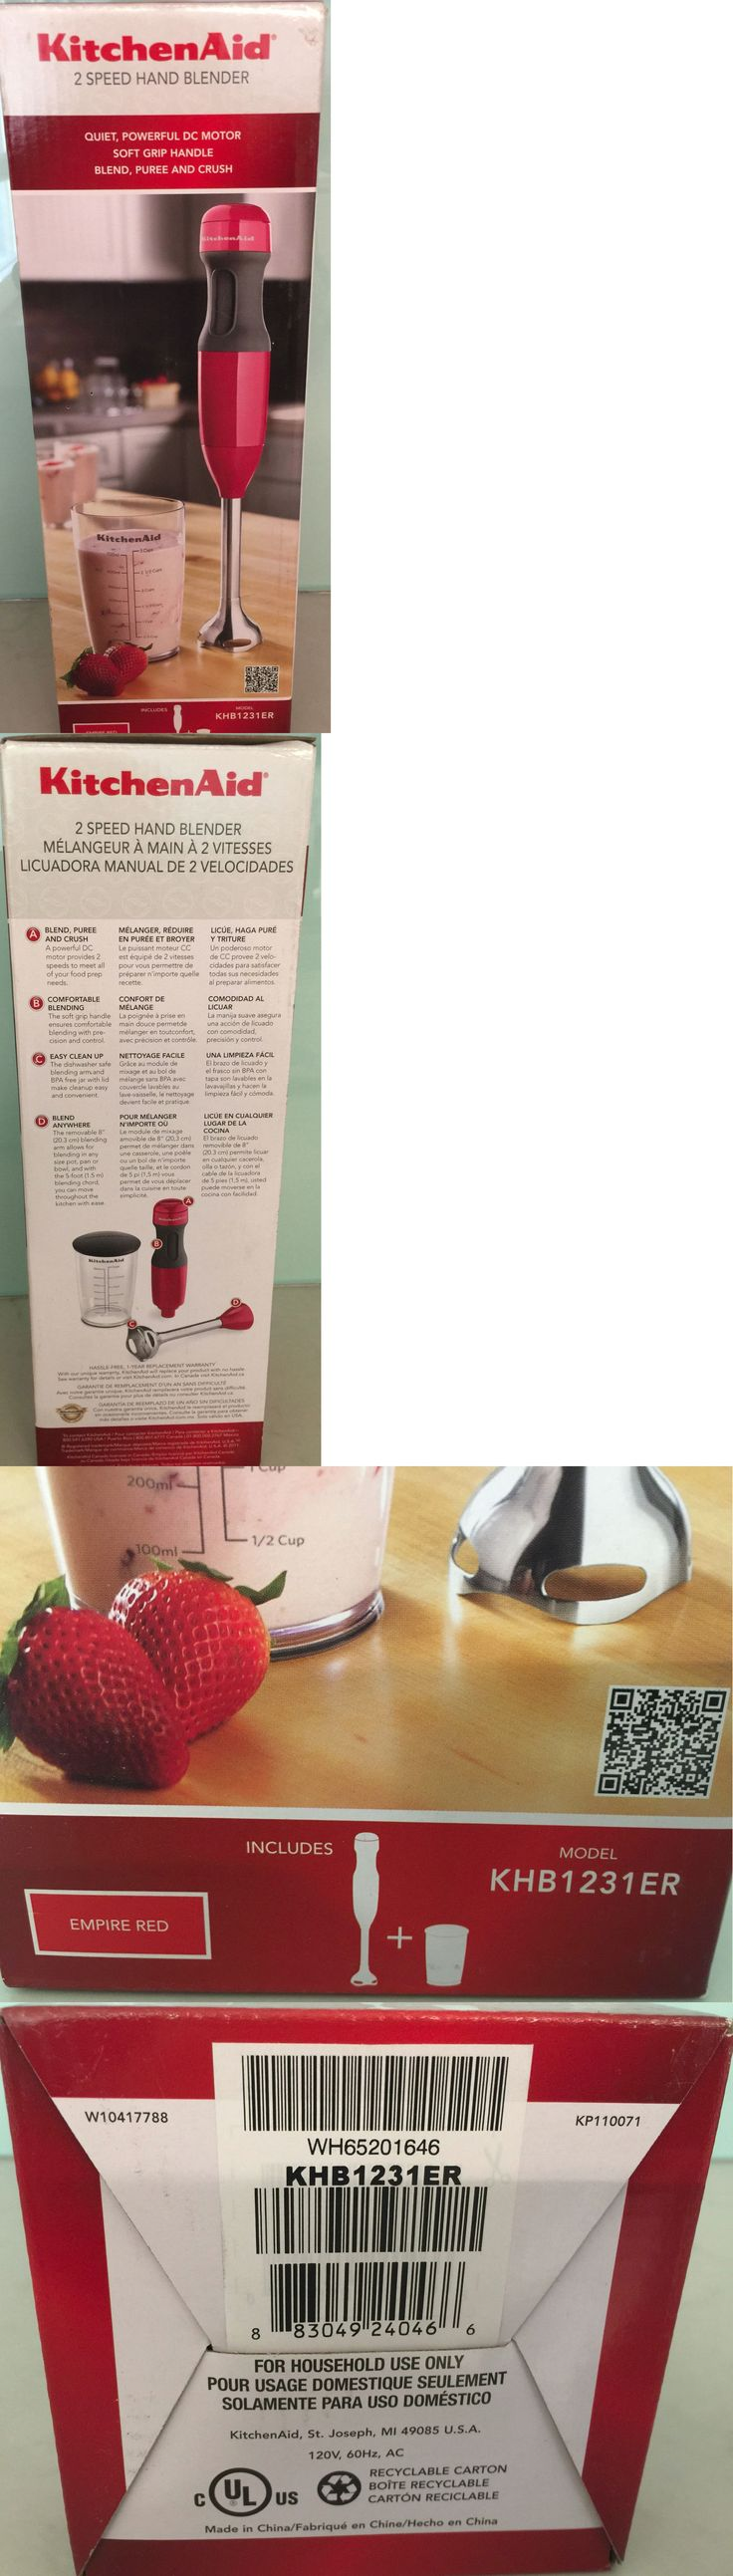 Blenders Handheld 133703: New Sealed Kitchenaid Khb1231er 2-Speed Hand Blender Empire Red Electric Mixer -> BUY IT NOW ONLY: $32.44 on eBay!